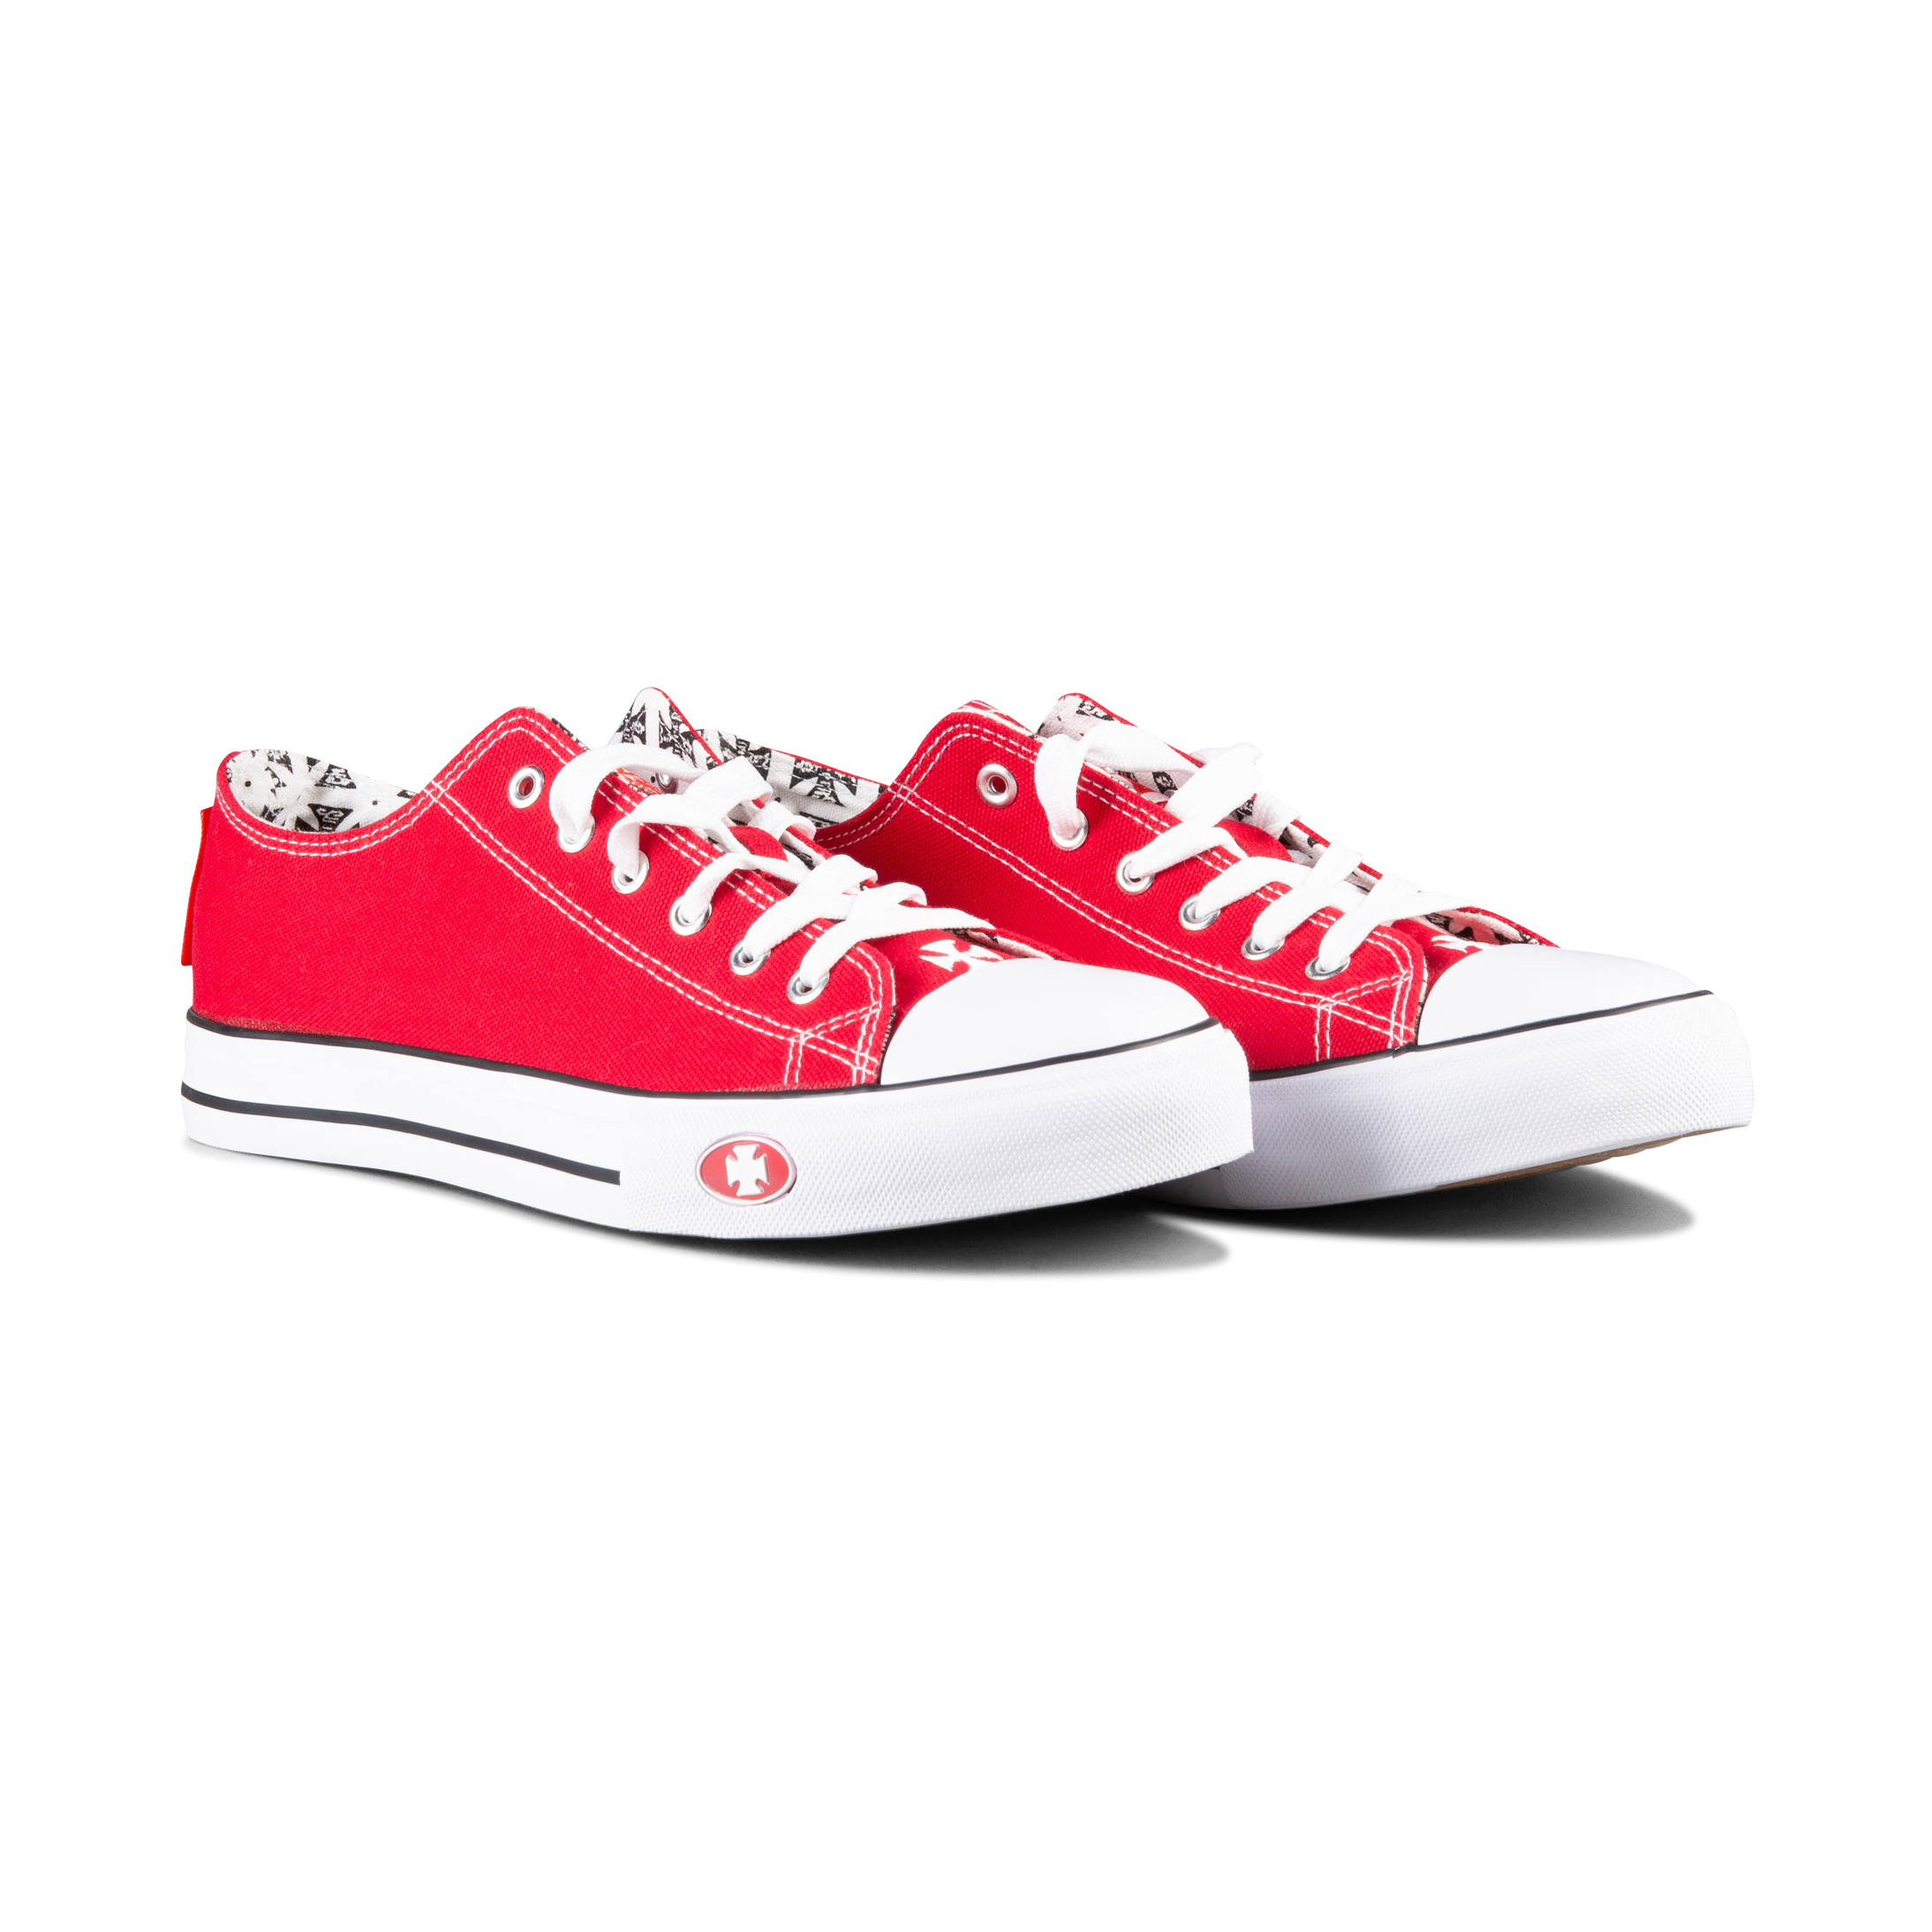 West Coast Choppers Warrior Low-Top